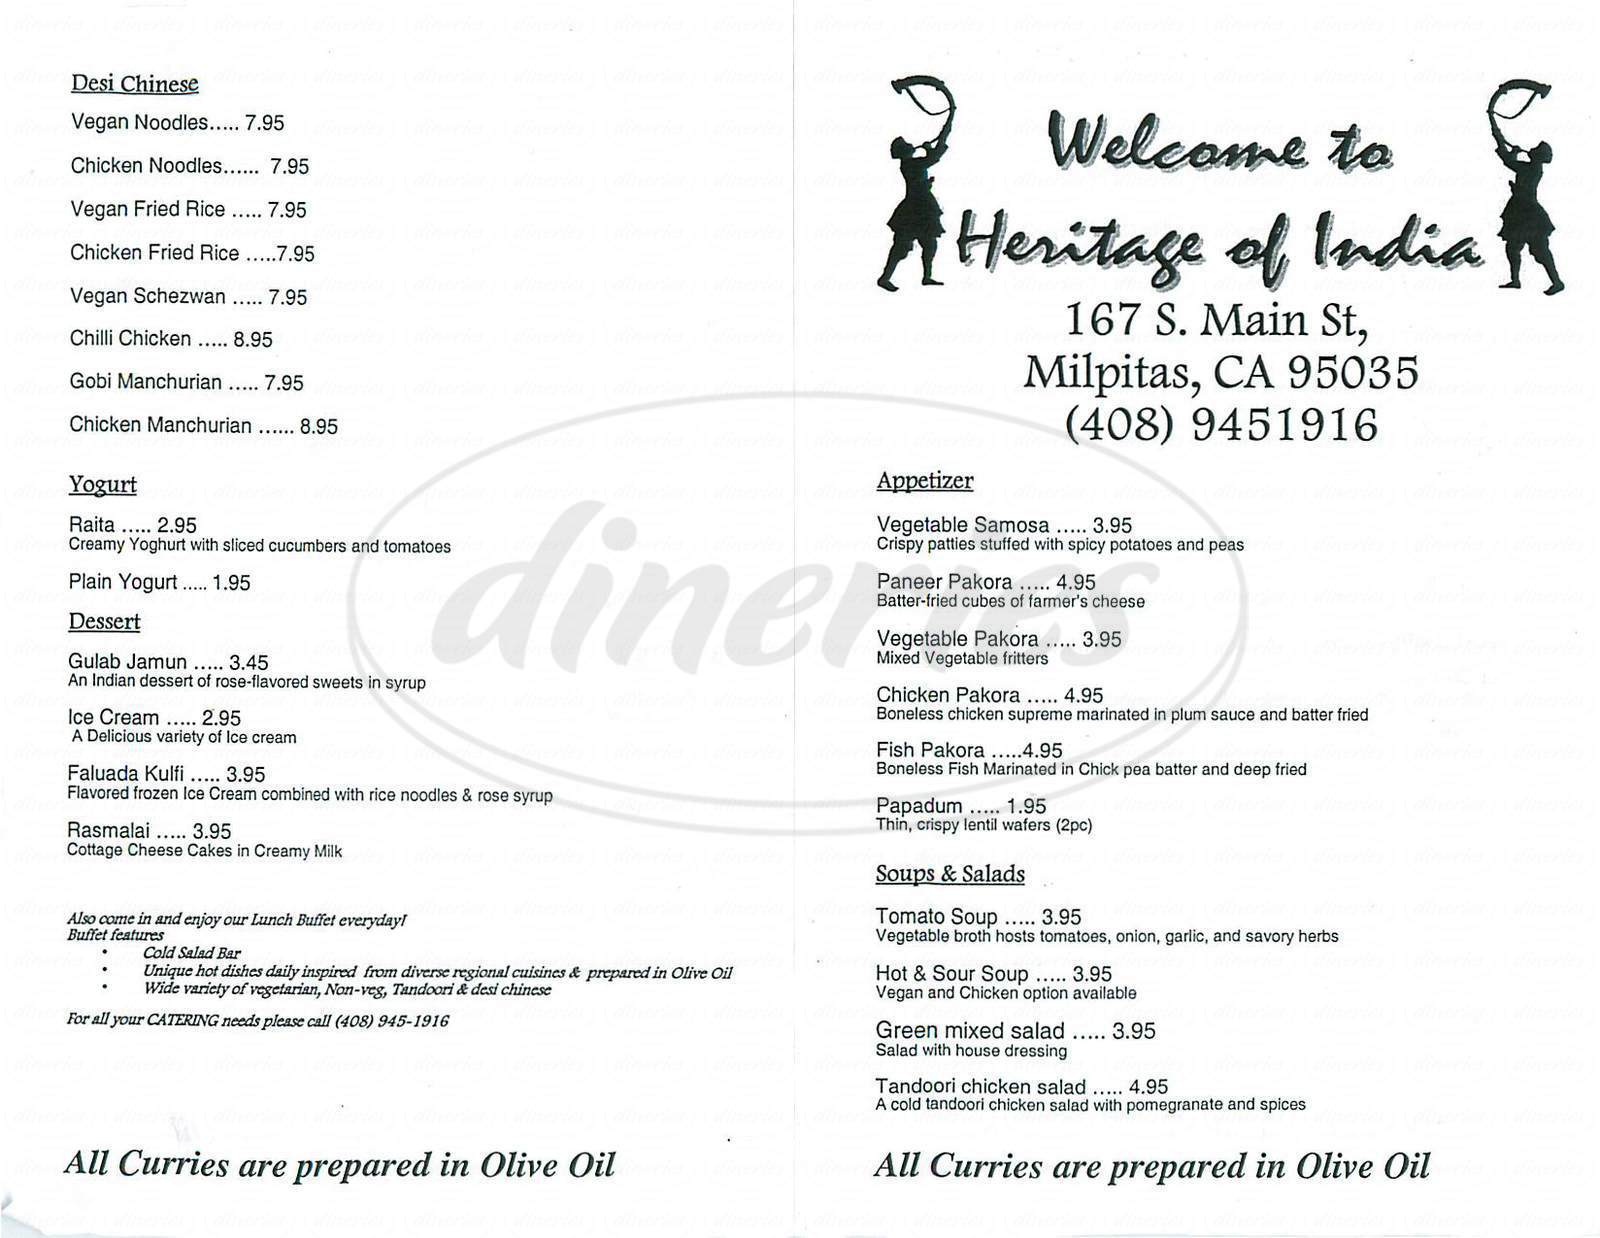 Big menu for Heritage of India, Milpitas